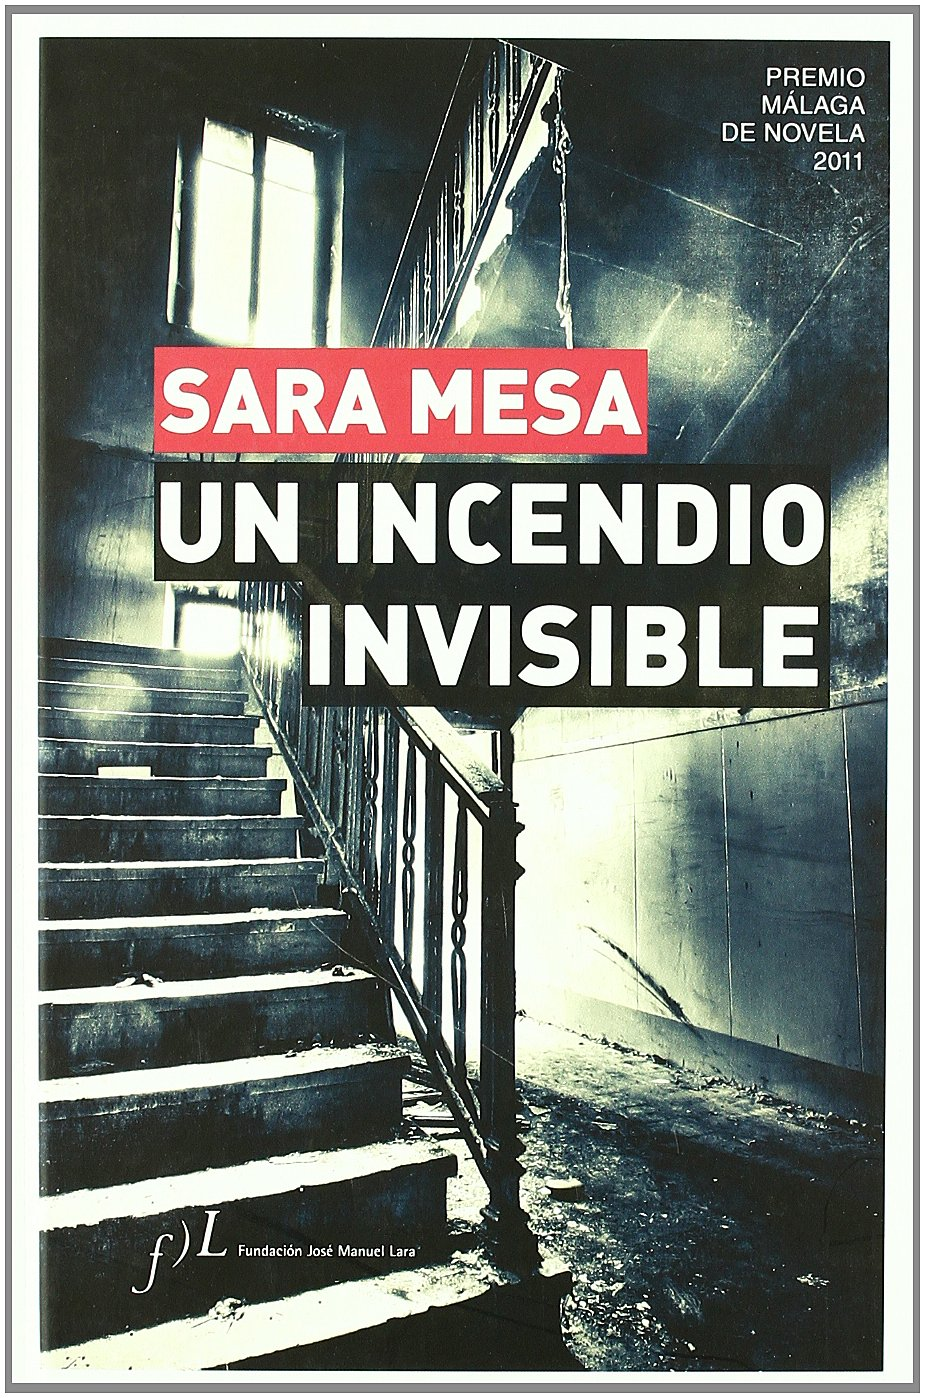 Incendio Invisible, Un (2011 Premio Malaga De Novela): Amazon.es ...